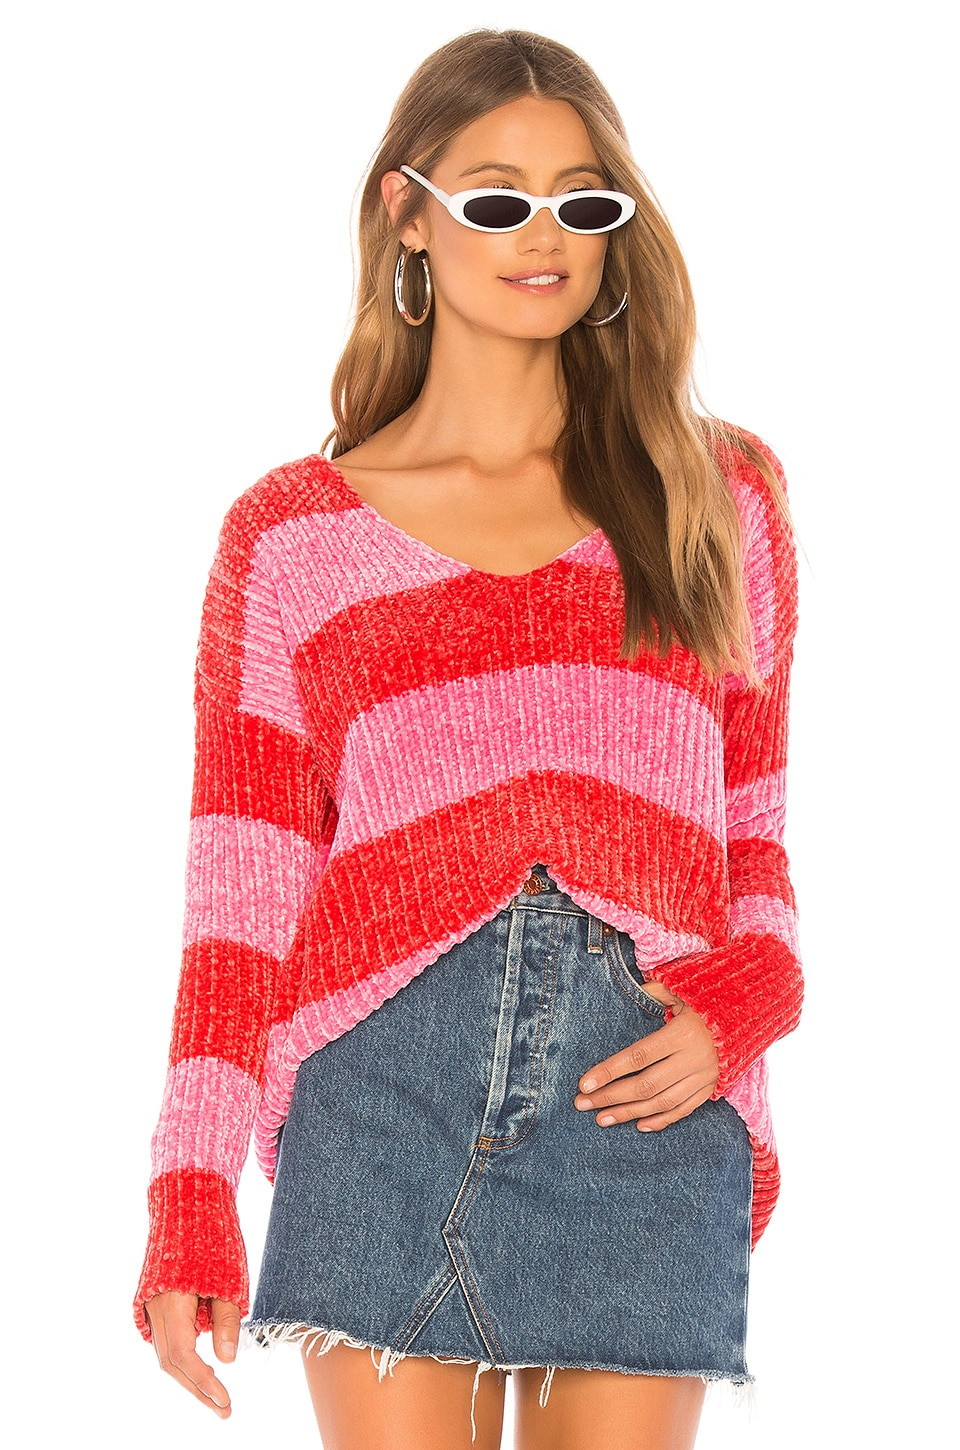 Wildfox Couture Shine Clark Sweater in Red & Neon Magenta